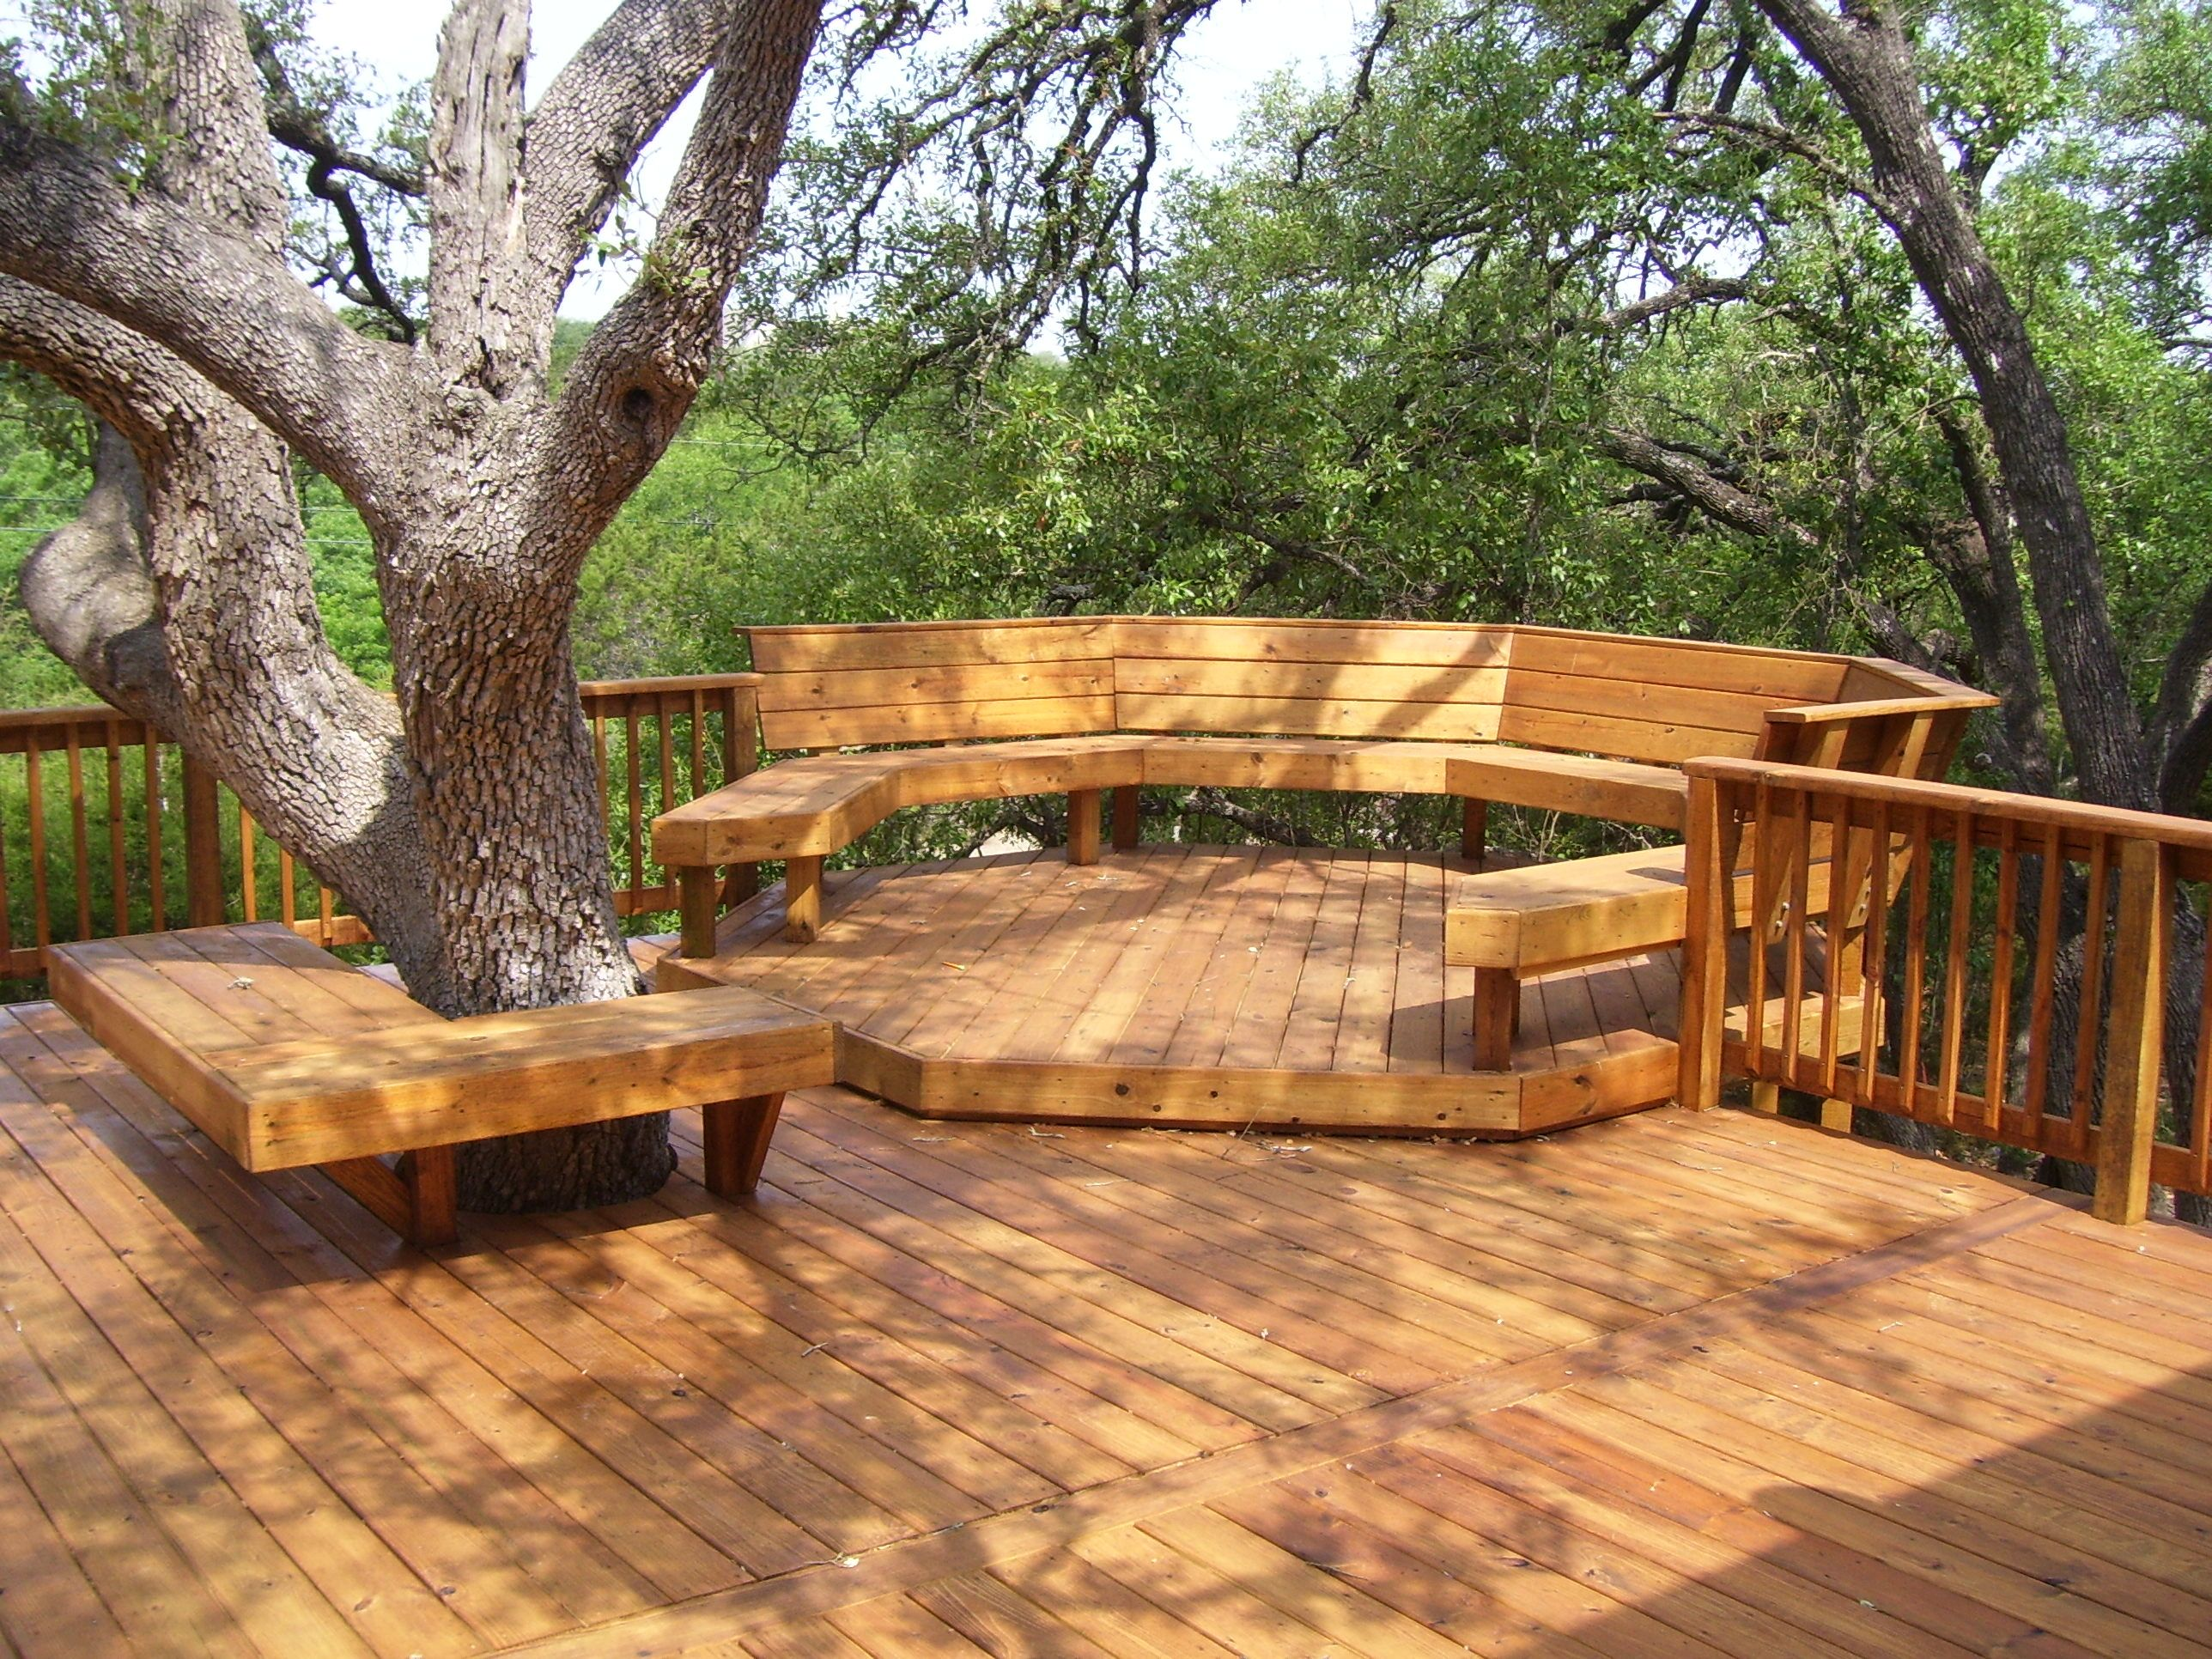 Modern Outside Decks For Outdoor Lounge Leavy Trees Round Bench Cool Ideas